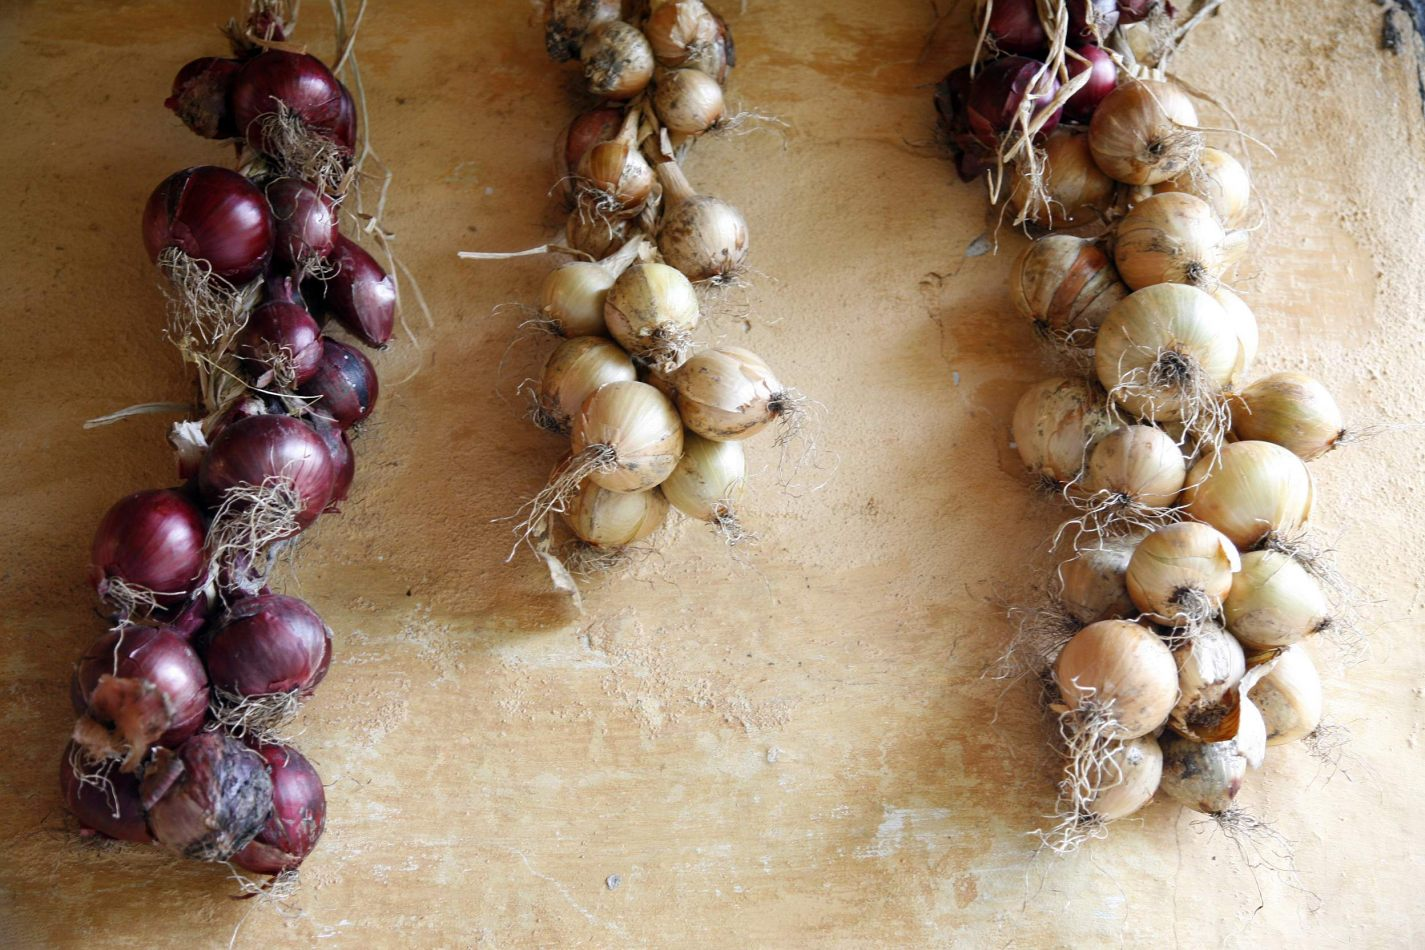 Anthony Ellis Photography: Silent Afternoons - Onions